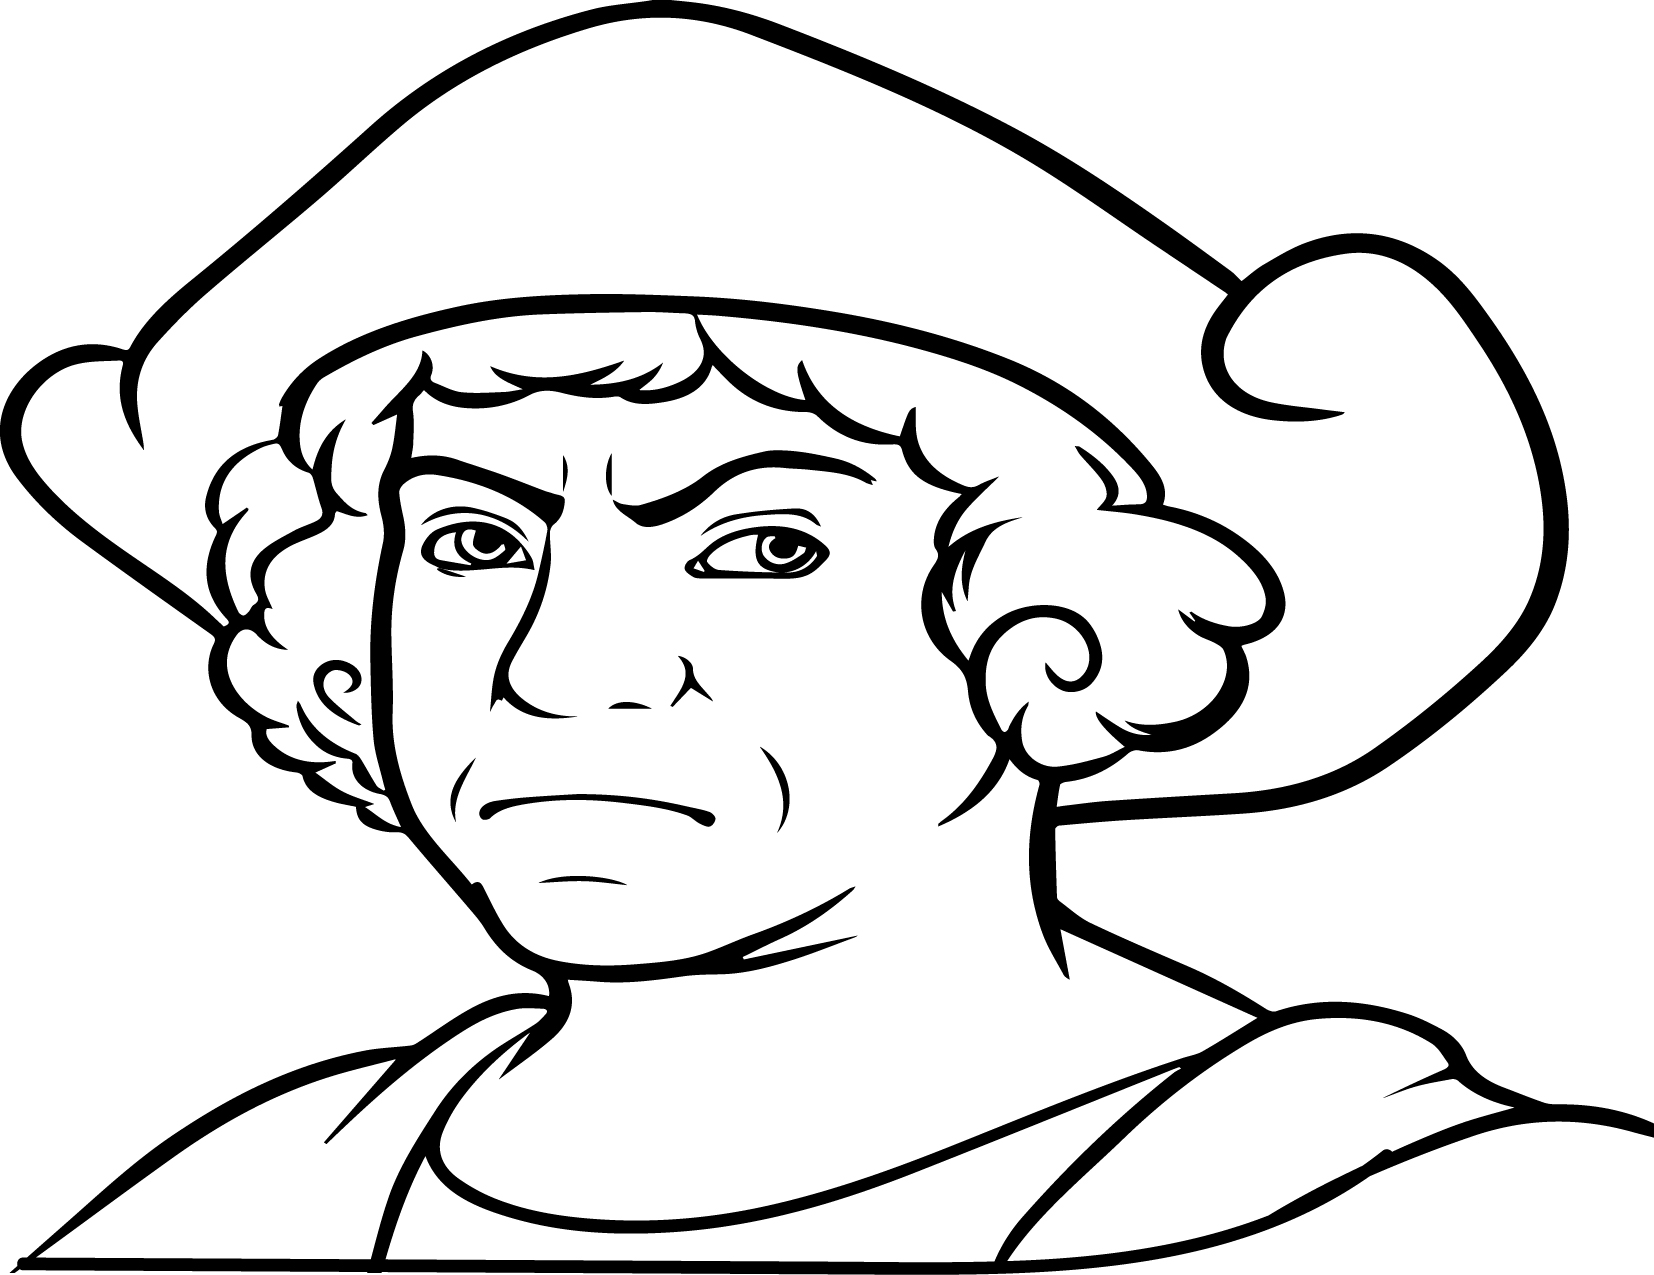 Christopher Columbus Drawing at GetDrawings.com | Free for ...